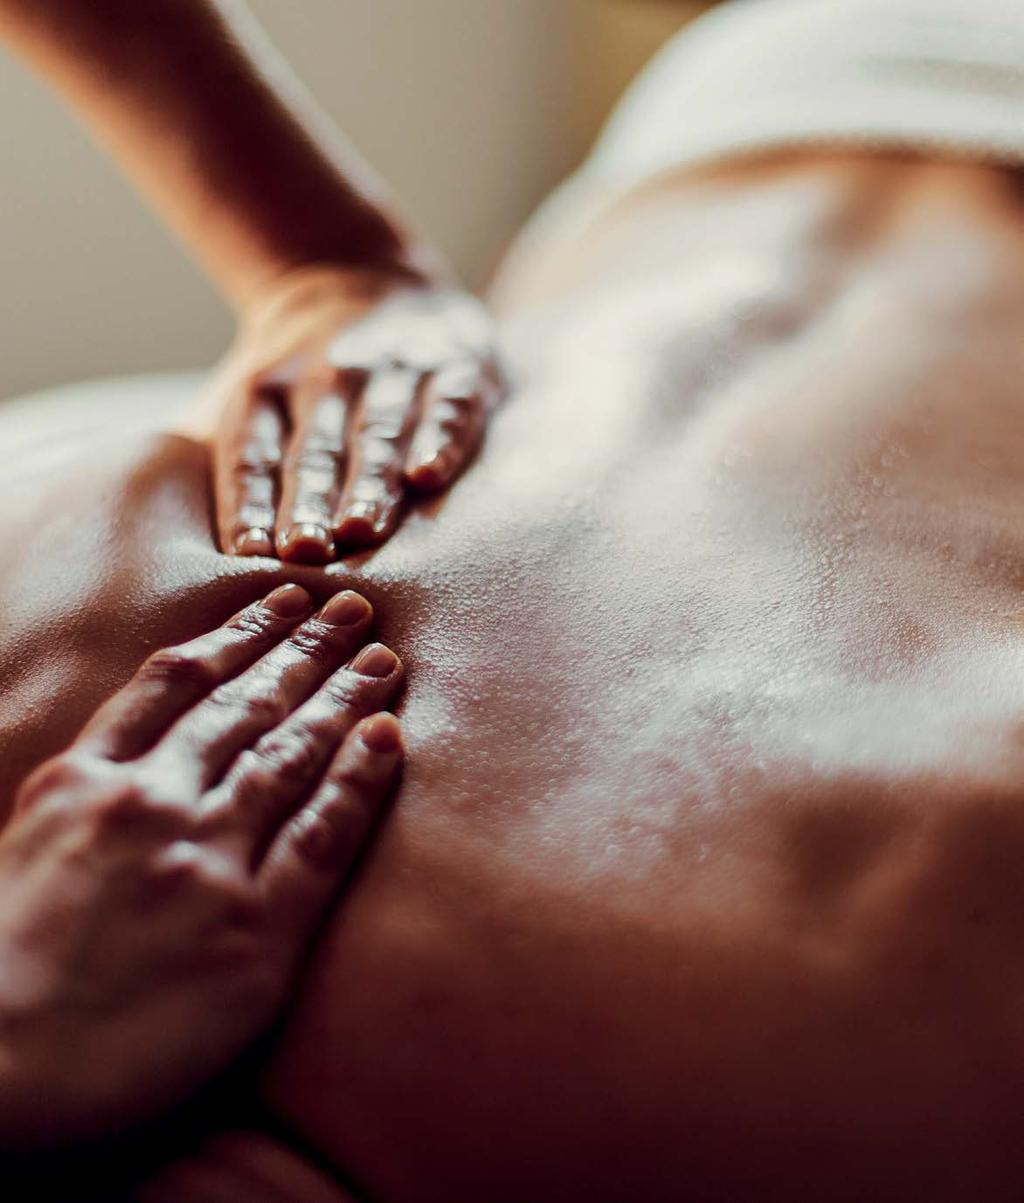 Discover our specialised treatments Discover our specialised treatments Aromatherapy massage 55 minutes for 70 ESPA aromatherapy massage is professional and specific, using a blend of individually